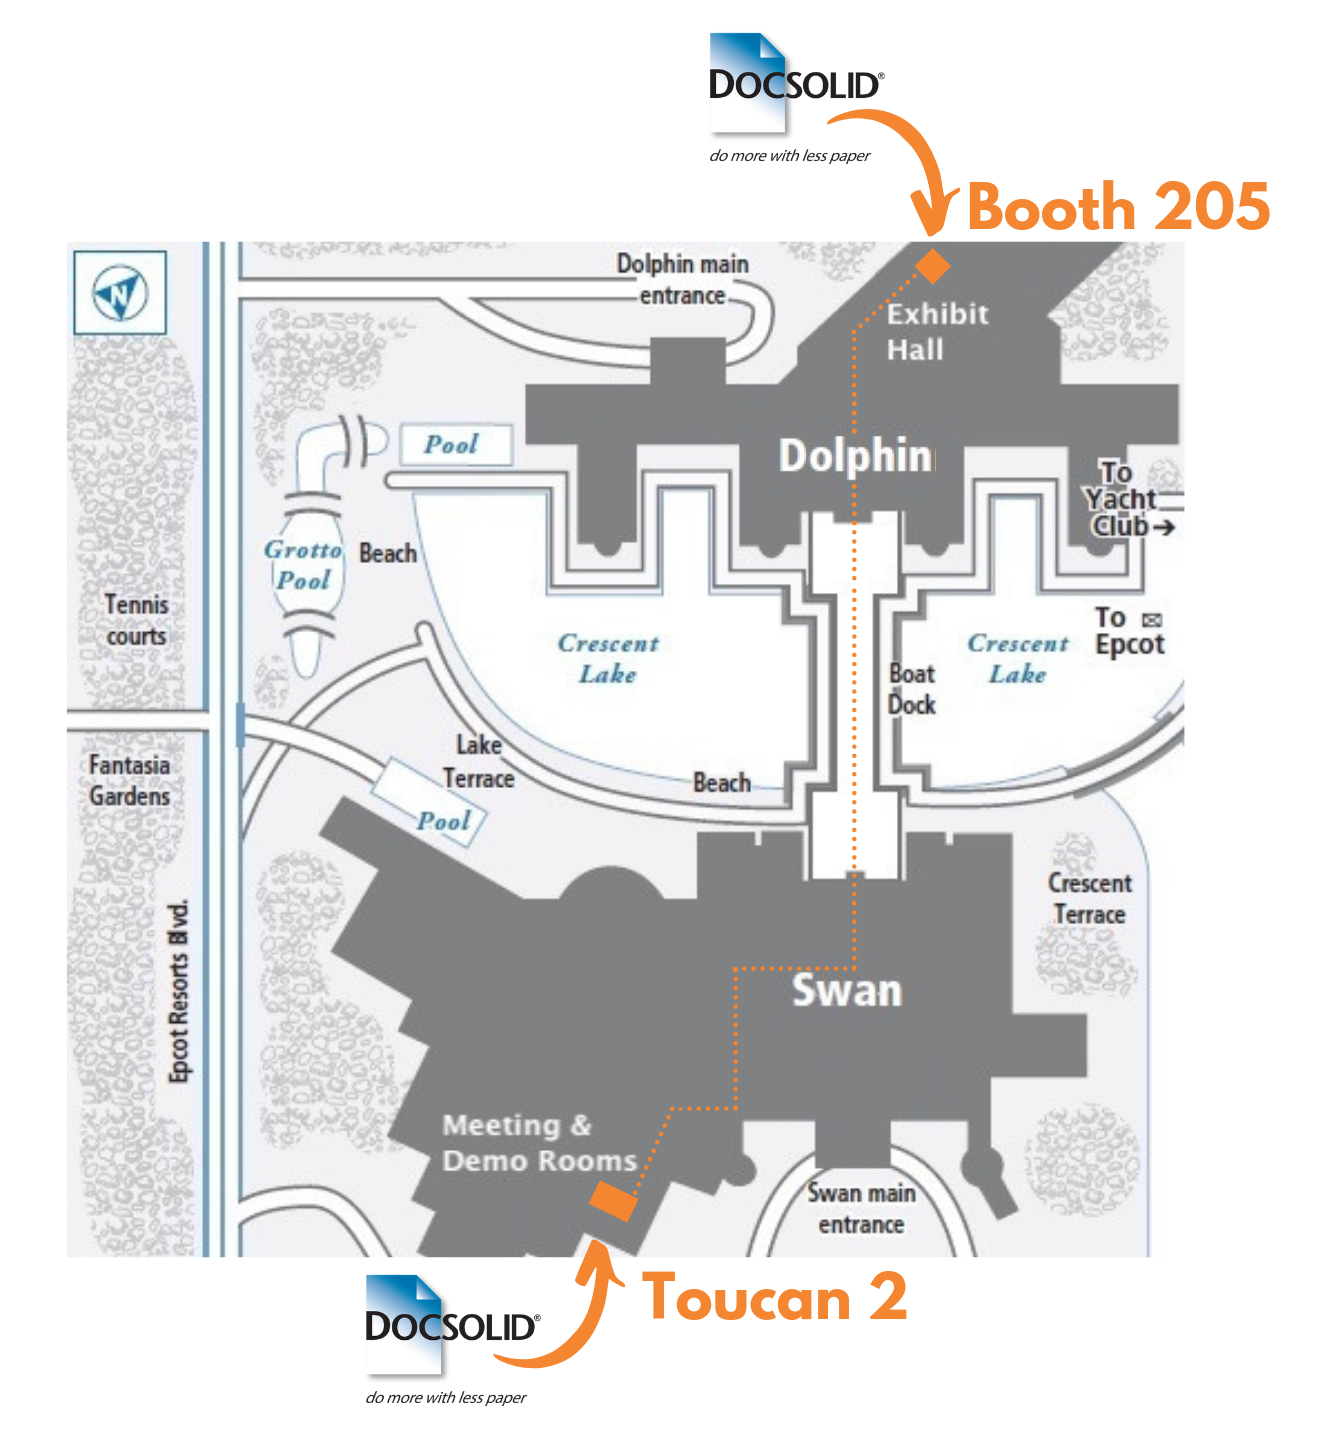 DocSolid ILTACON 2019 Map - Booth 205 + Room Toucan 2